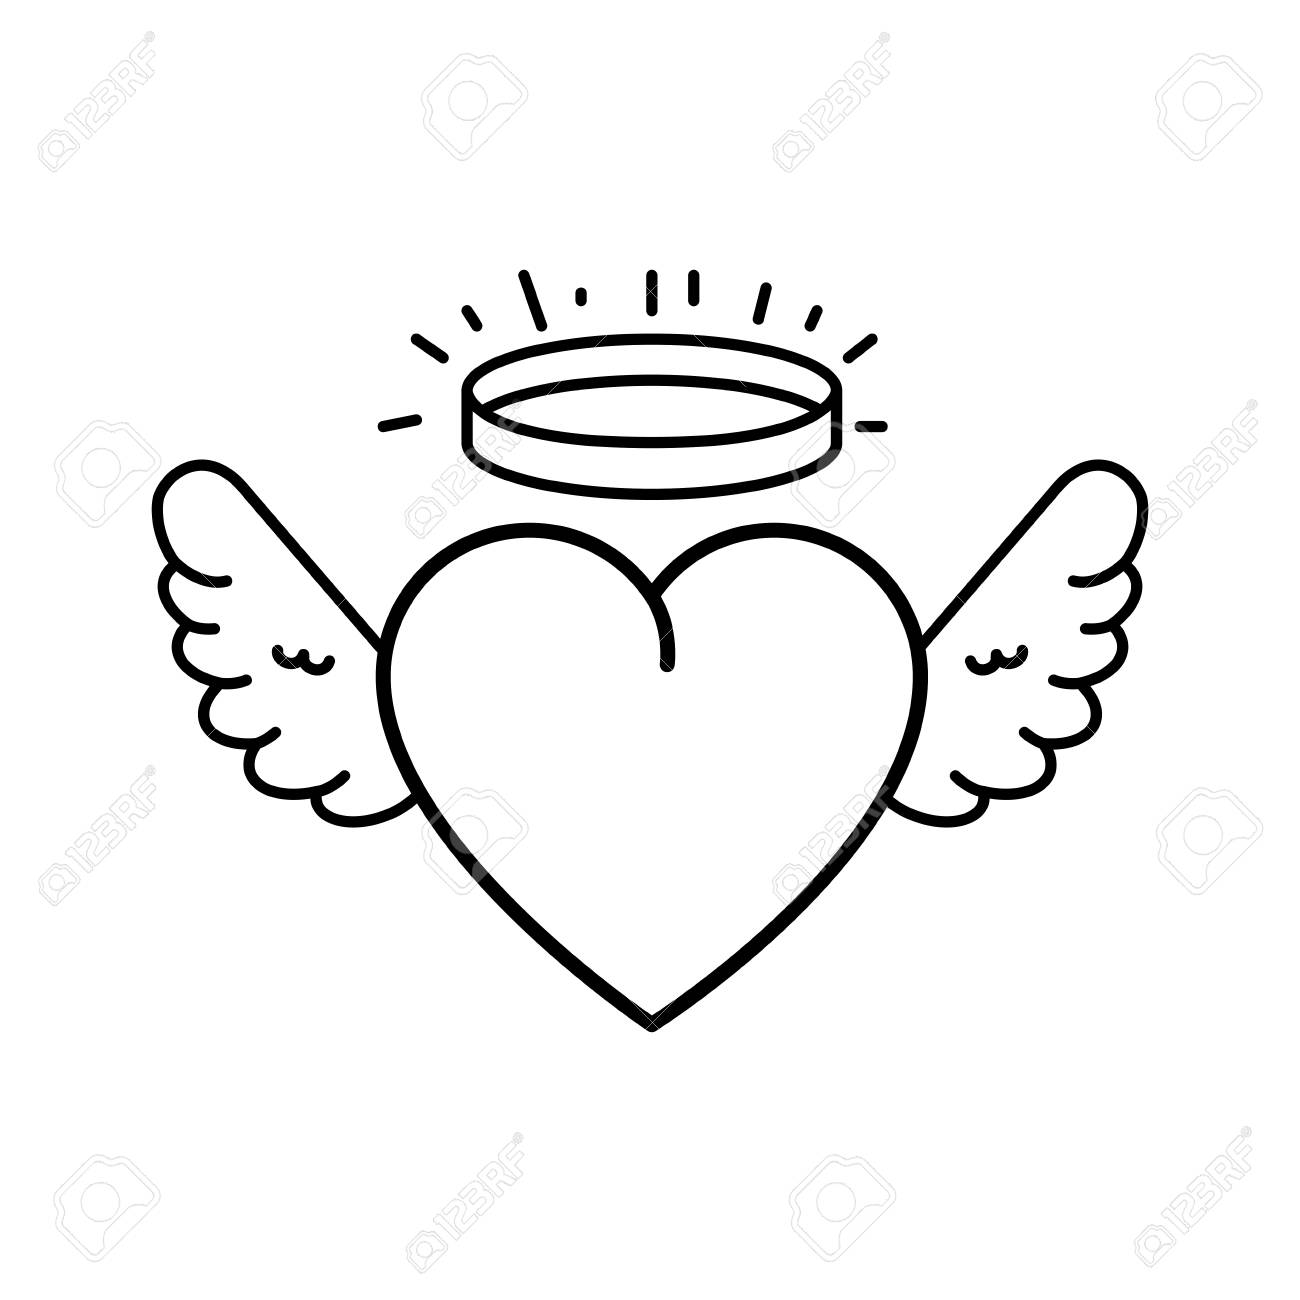 Cute Heart With Wings And Halo Vector Illustration Design Royalty